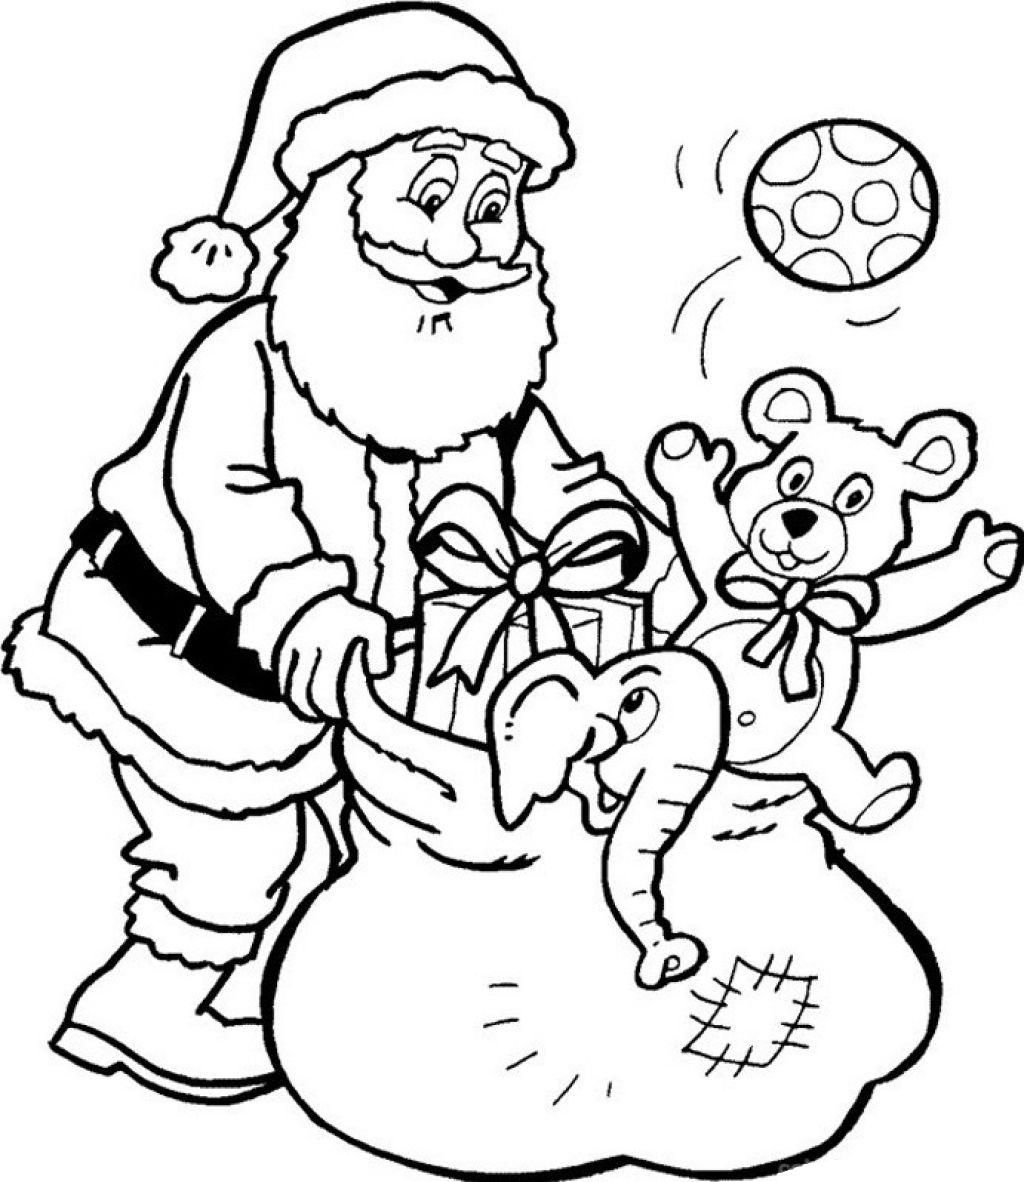 Santa Claus Coloring Pages For Adults With And Presents Printable Christmas Some